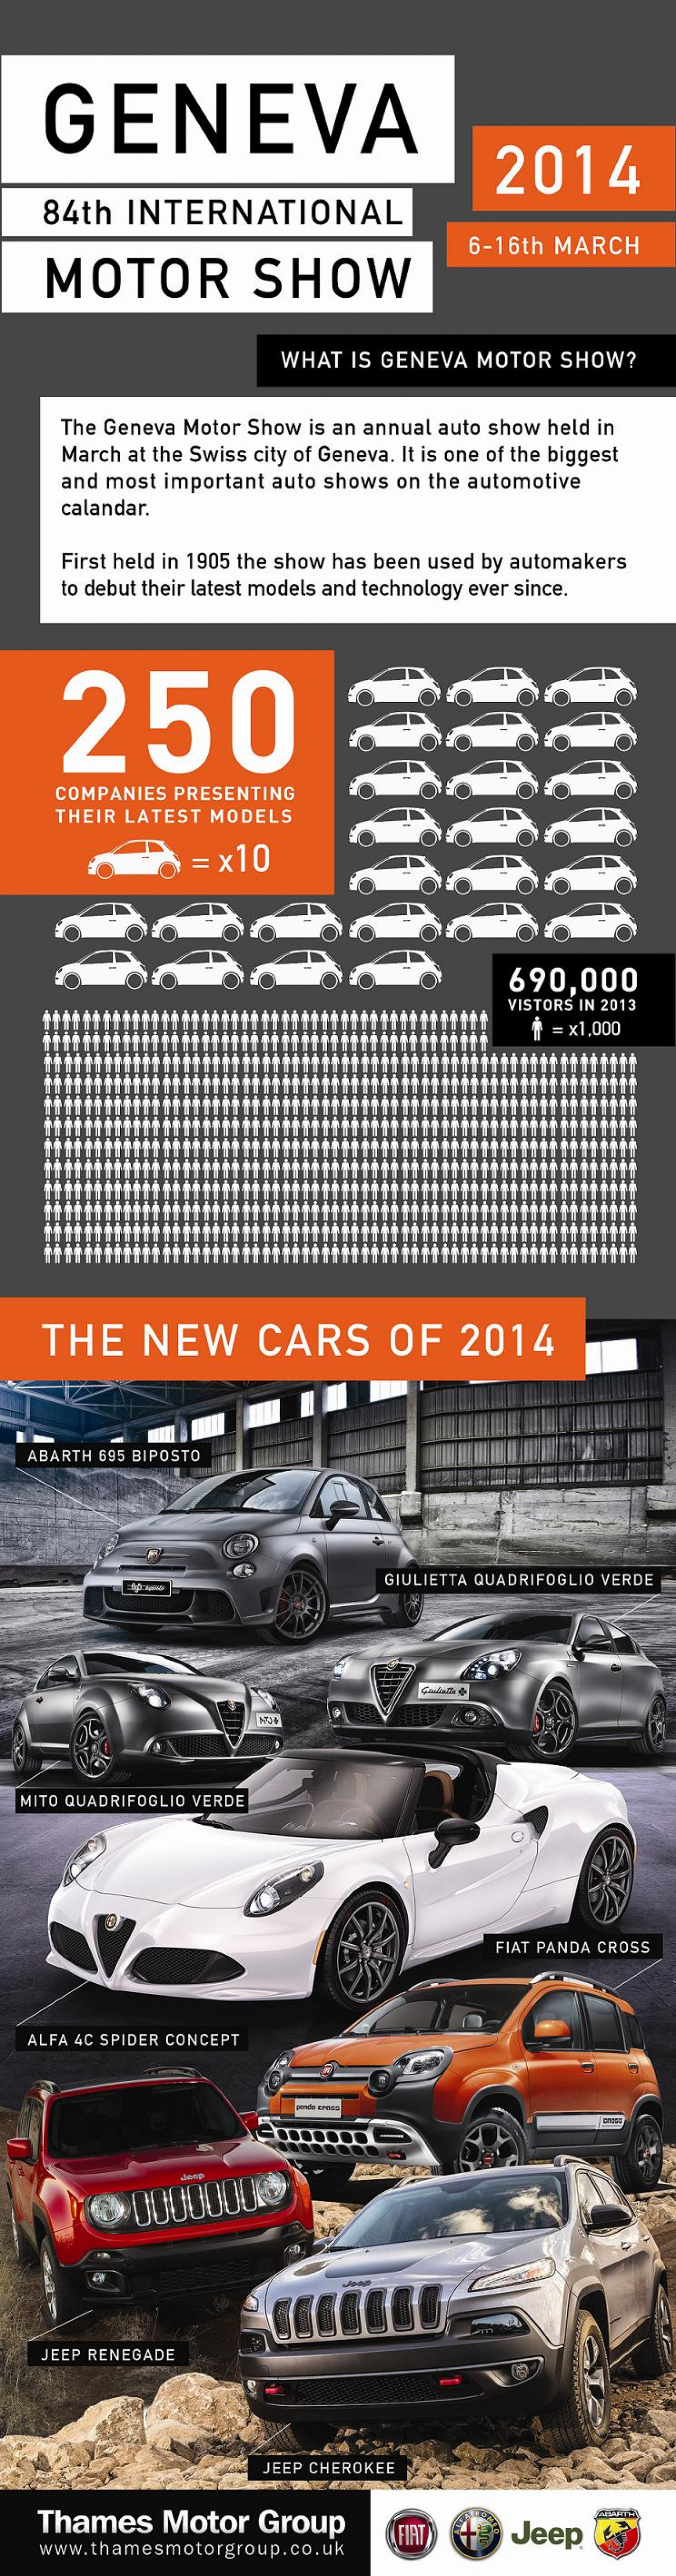 Geneva 84th International Motor Show Infographic